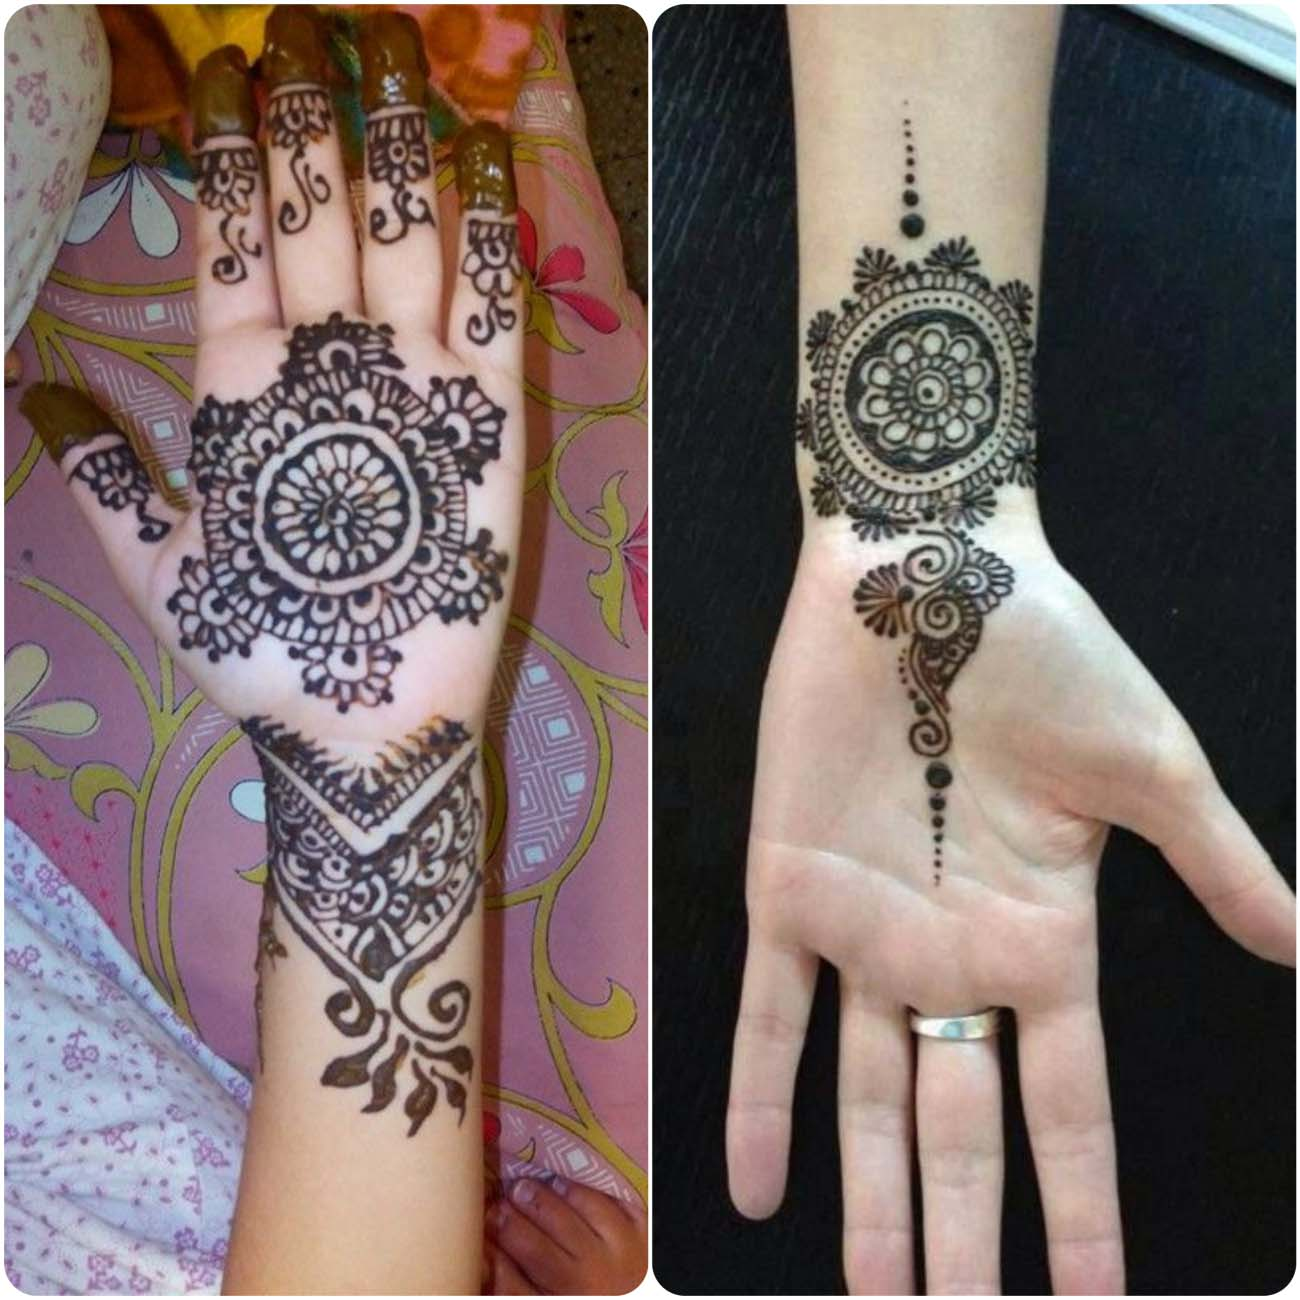 Mehndi design 2017 app - Innovative This Mehndi App Is Awesome My Daughter Likes This App Very Much Here We Provide Best Mehndi Designs 2017 V 15 For Android 232 Using This Best